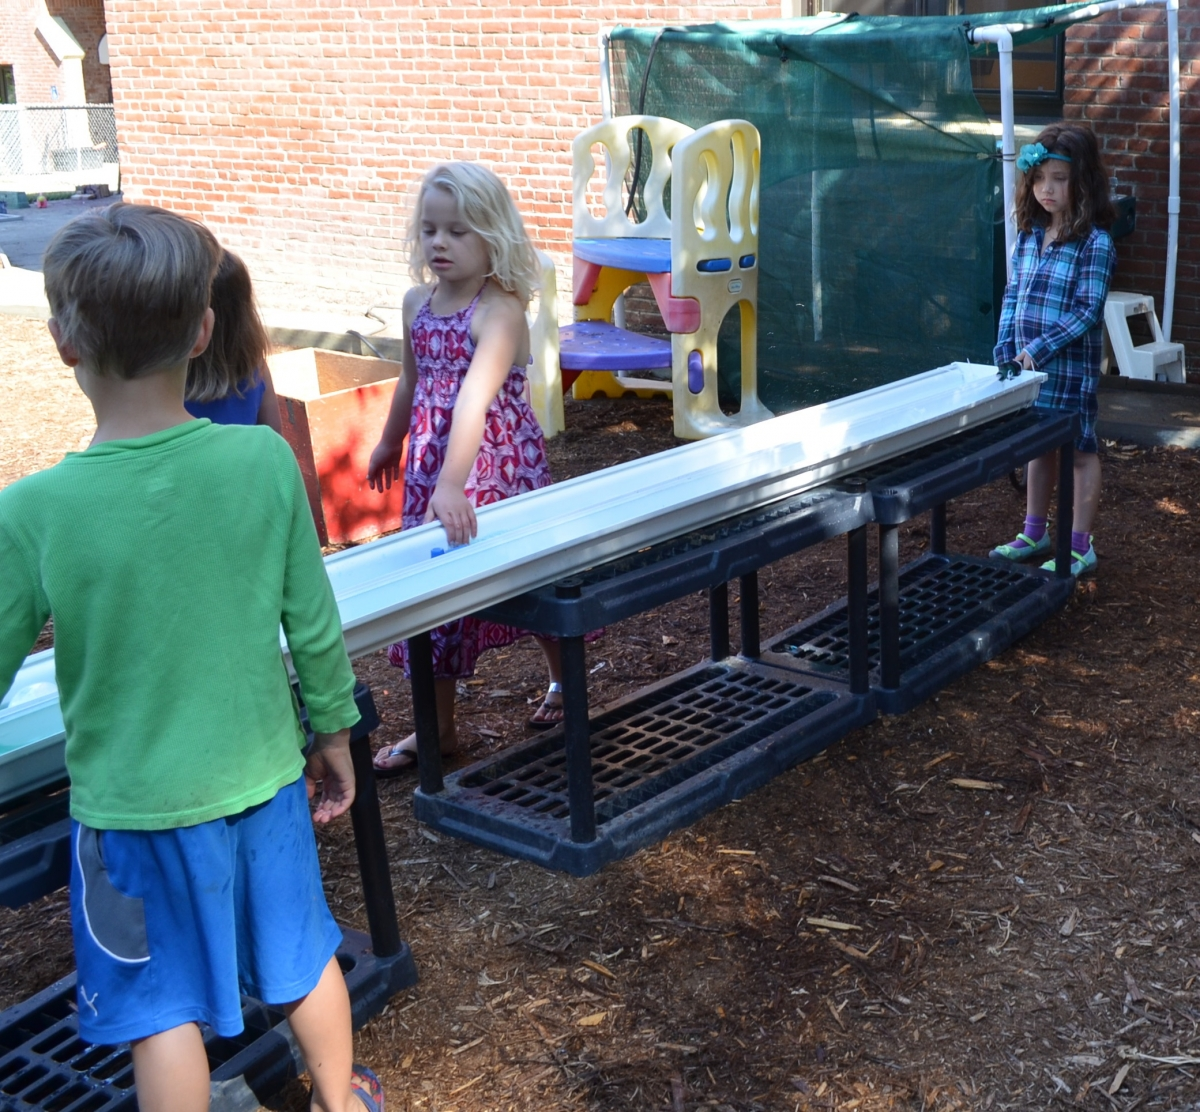 Four children standing outside around a long white plastic trough, playing with water.